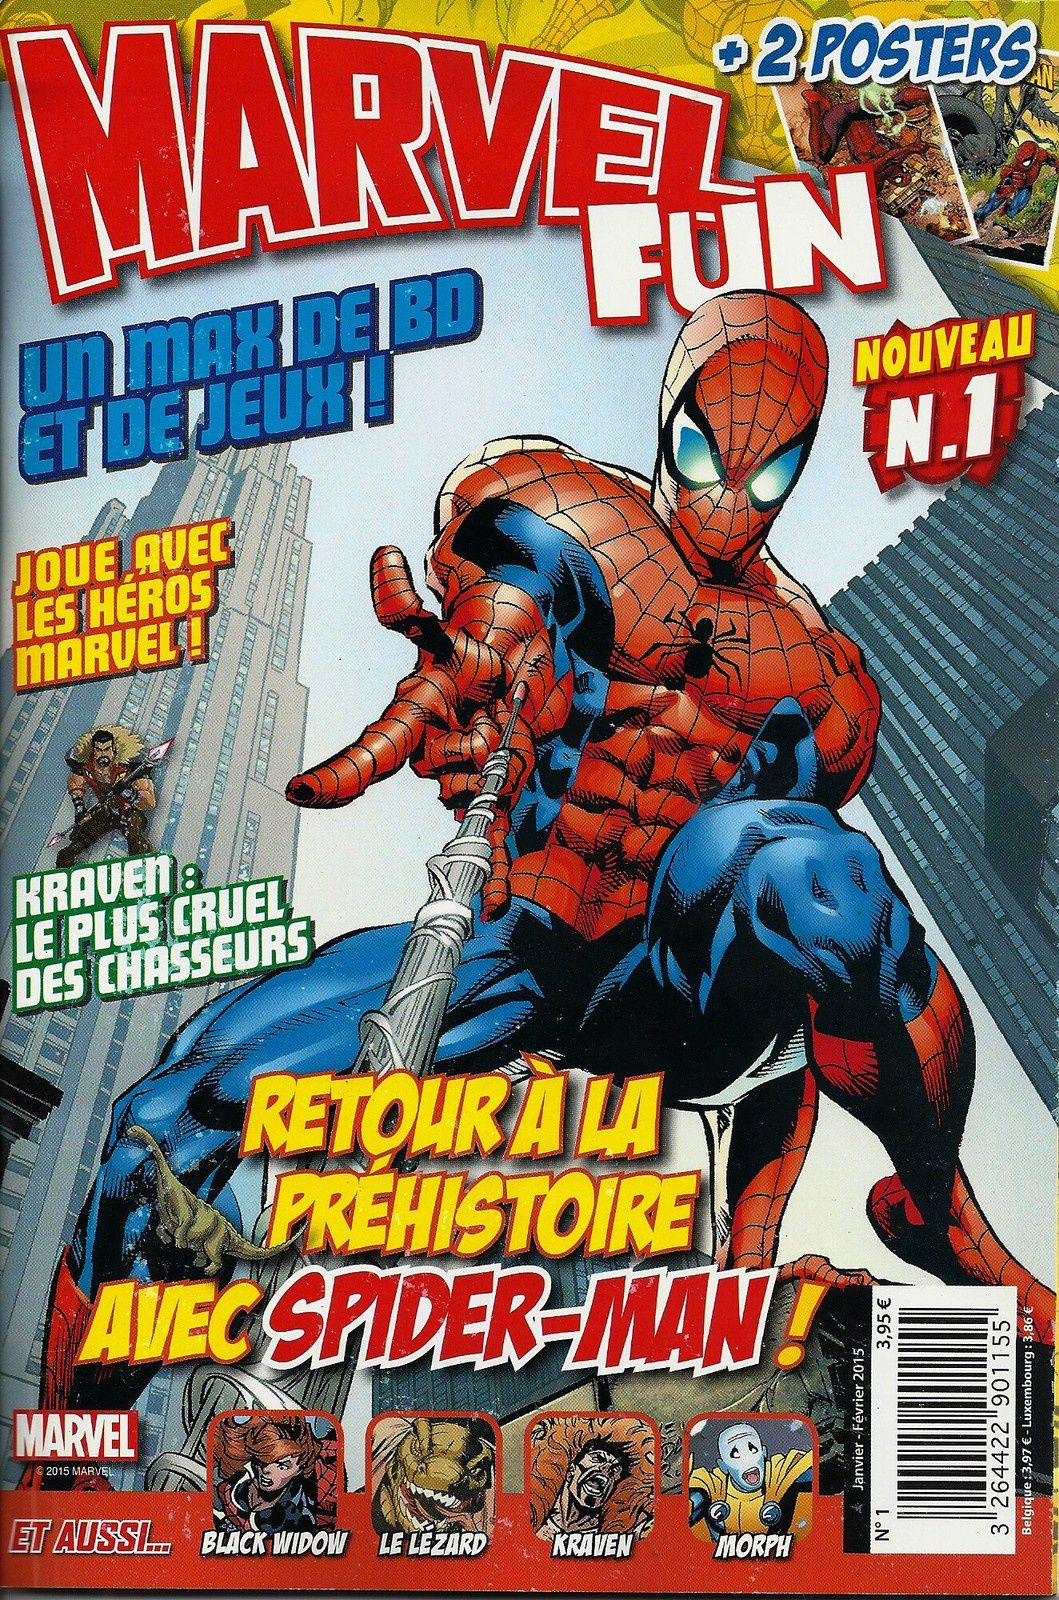 MARVEL FUN N°1